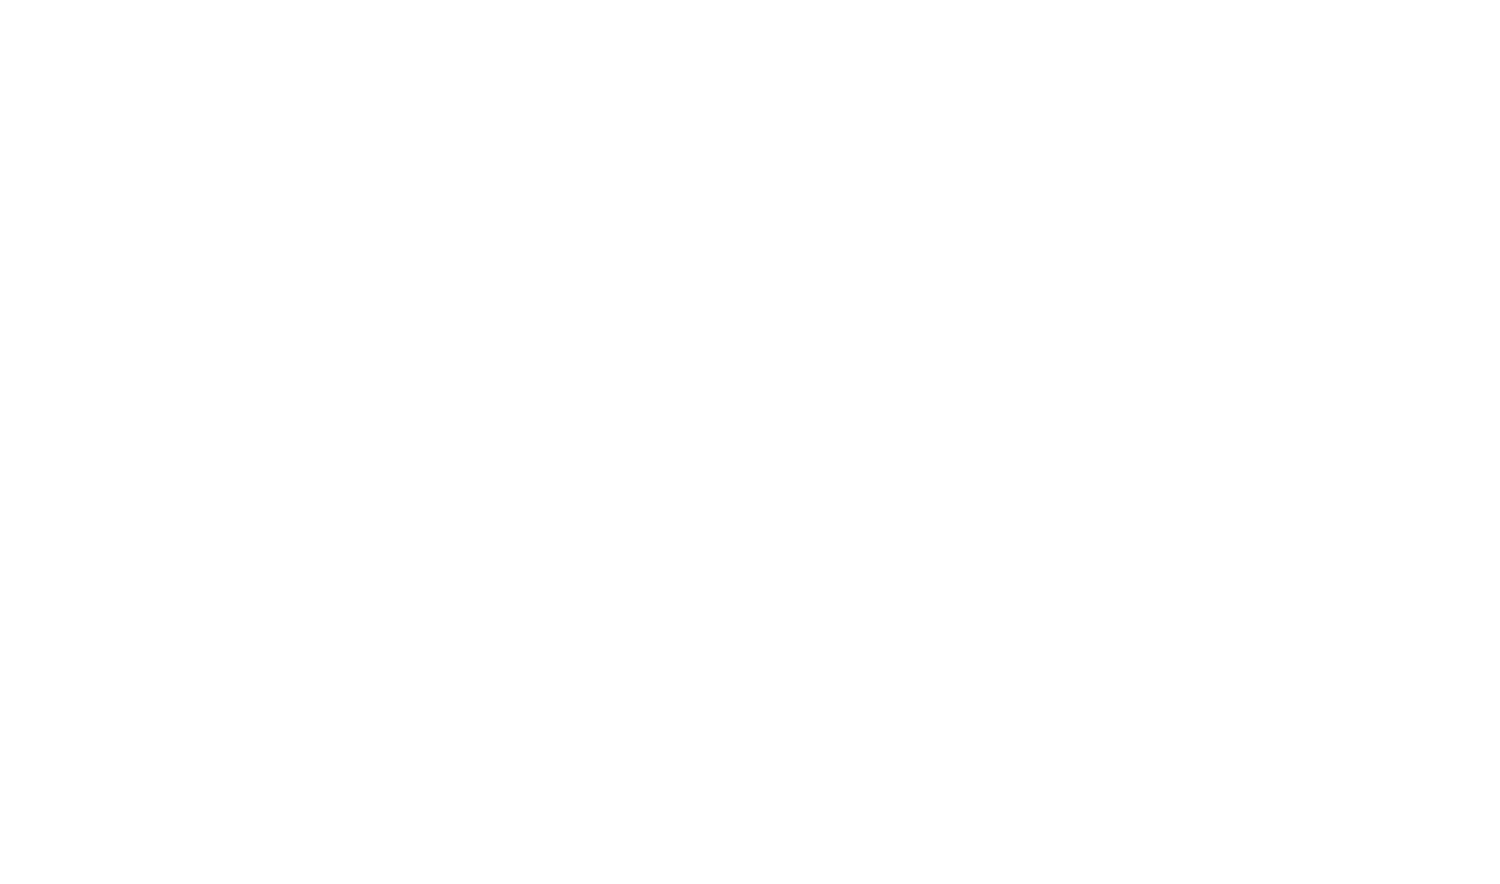 warrenmarshall